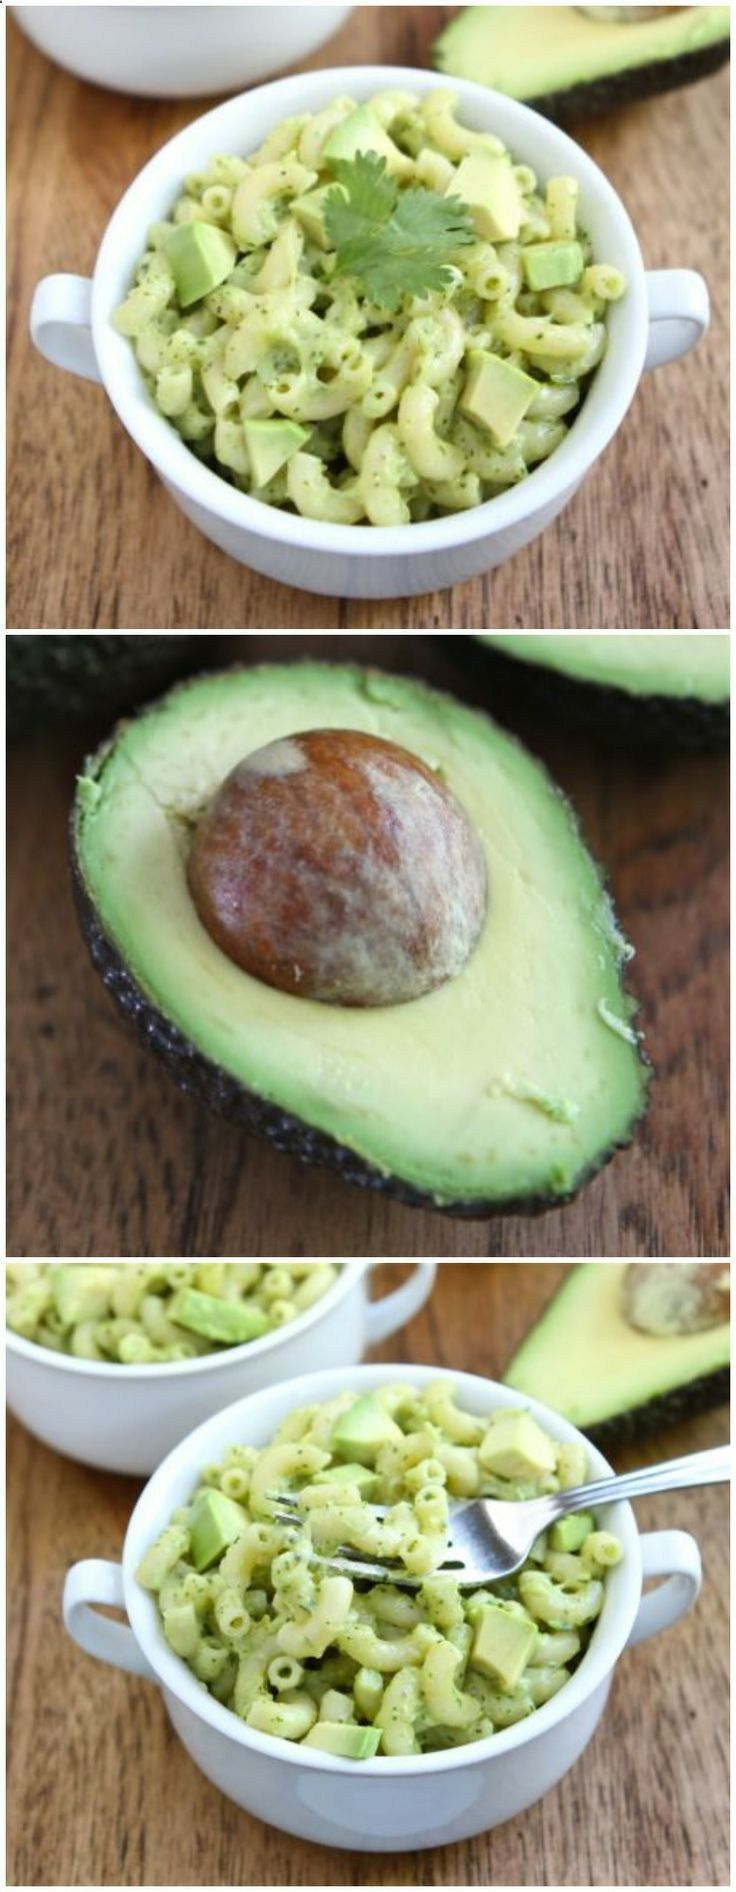 Stovetop Avocado Mac and Cheese | Food & Drink | Pinterest